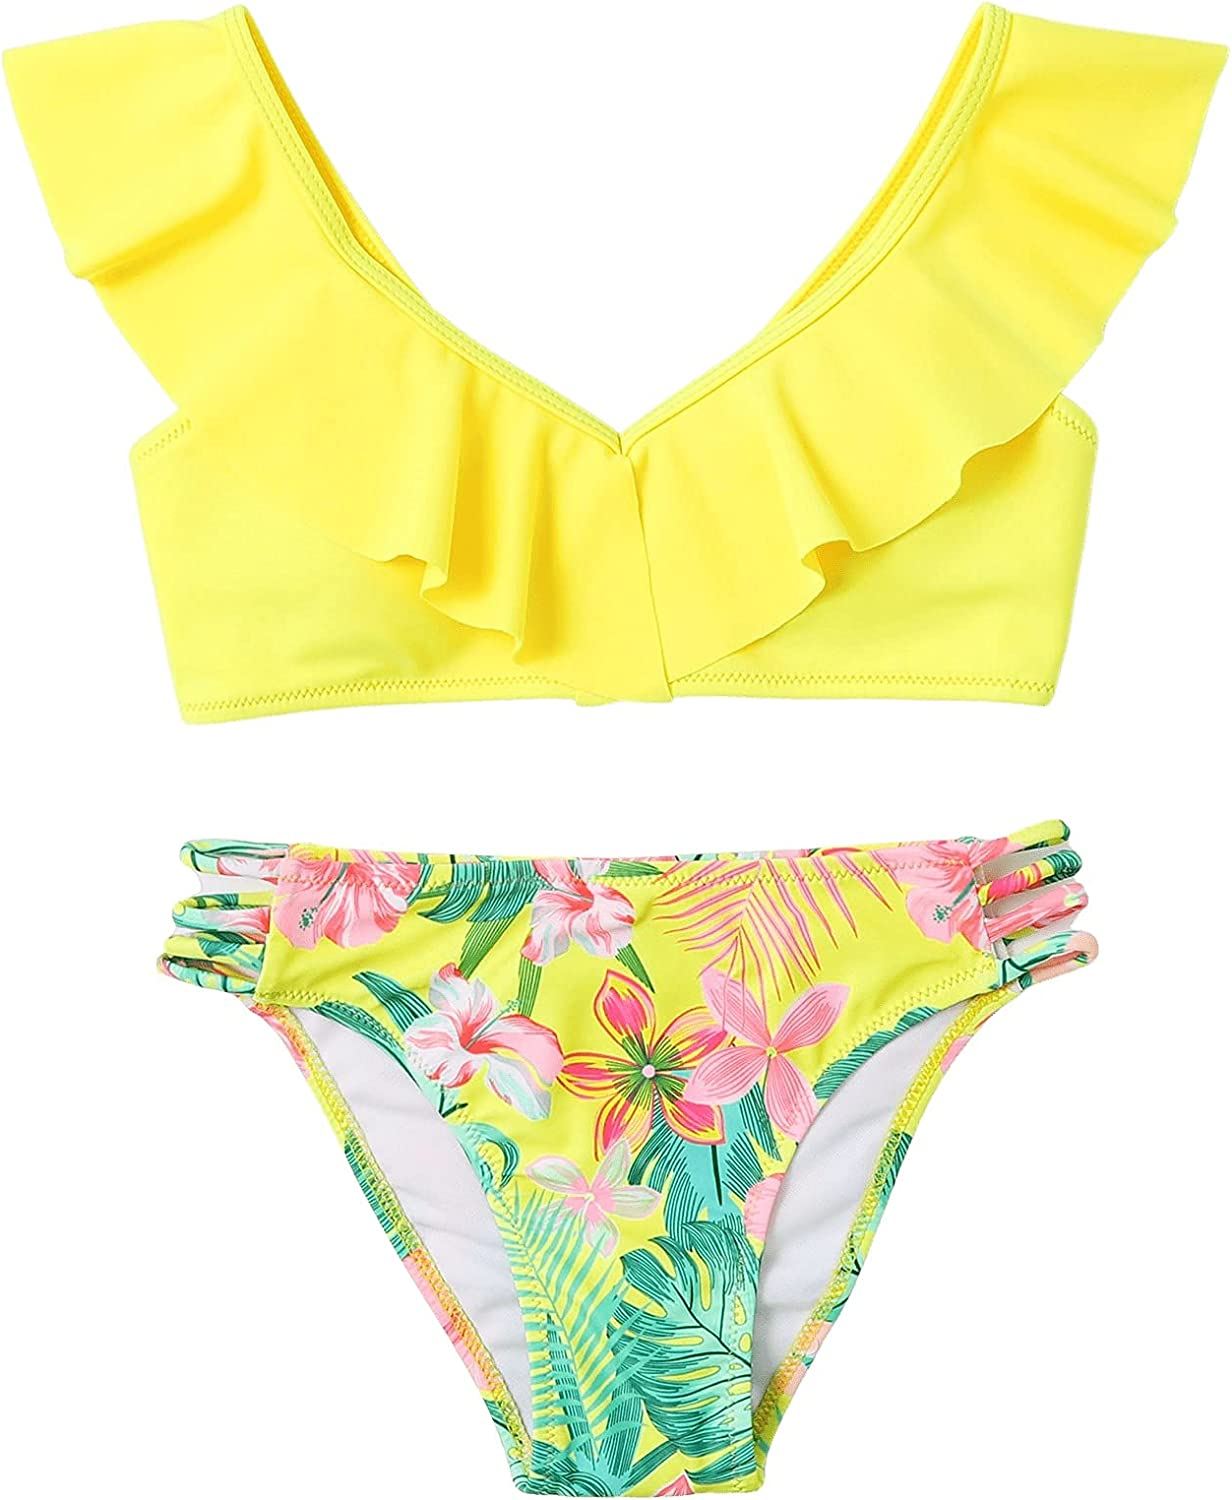 SOLY HUX Girl's Ruffle Trim Floral Print Bikini Bathing Suit Two Piece Swimsuits Yellow Floral 140